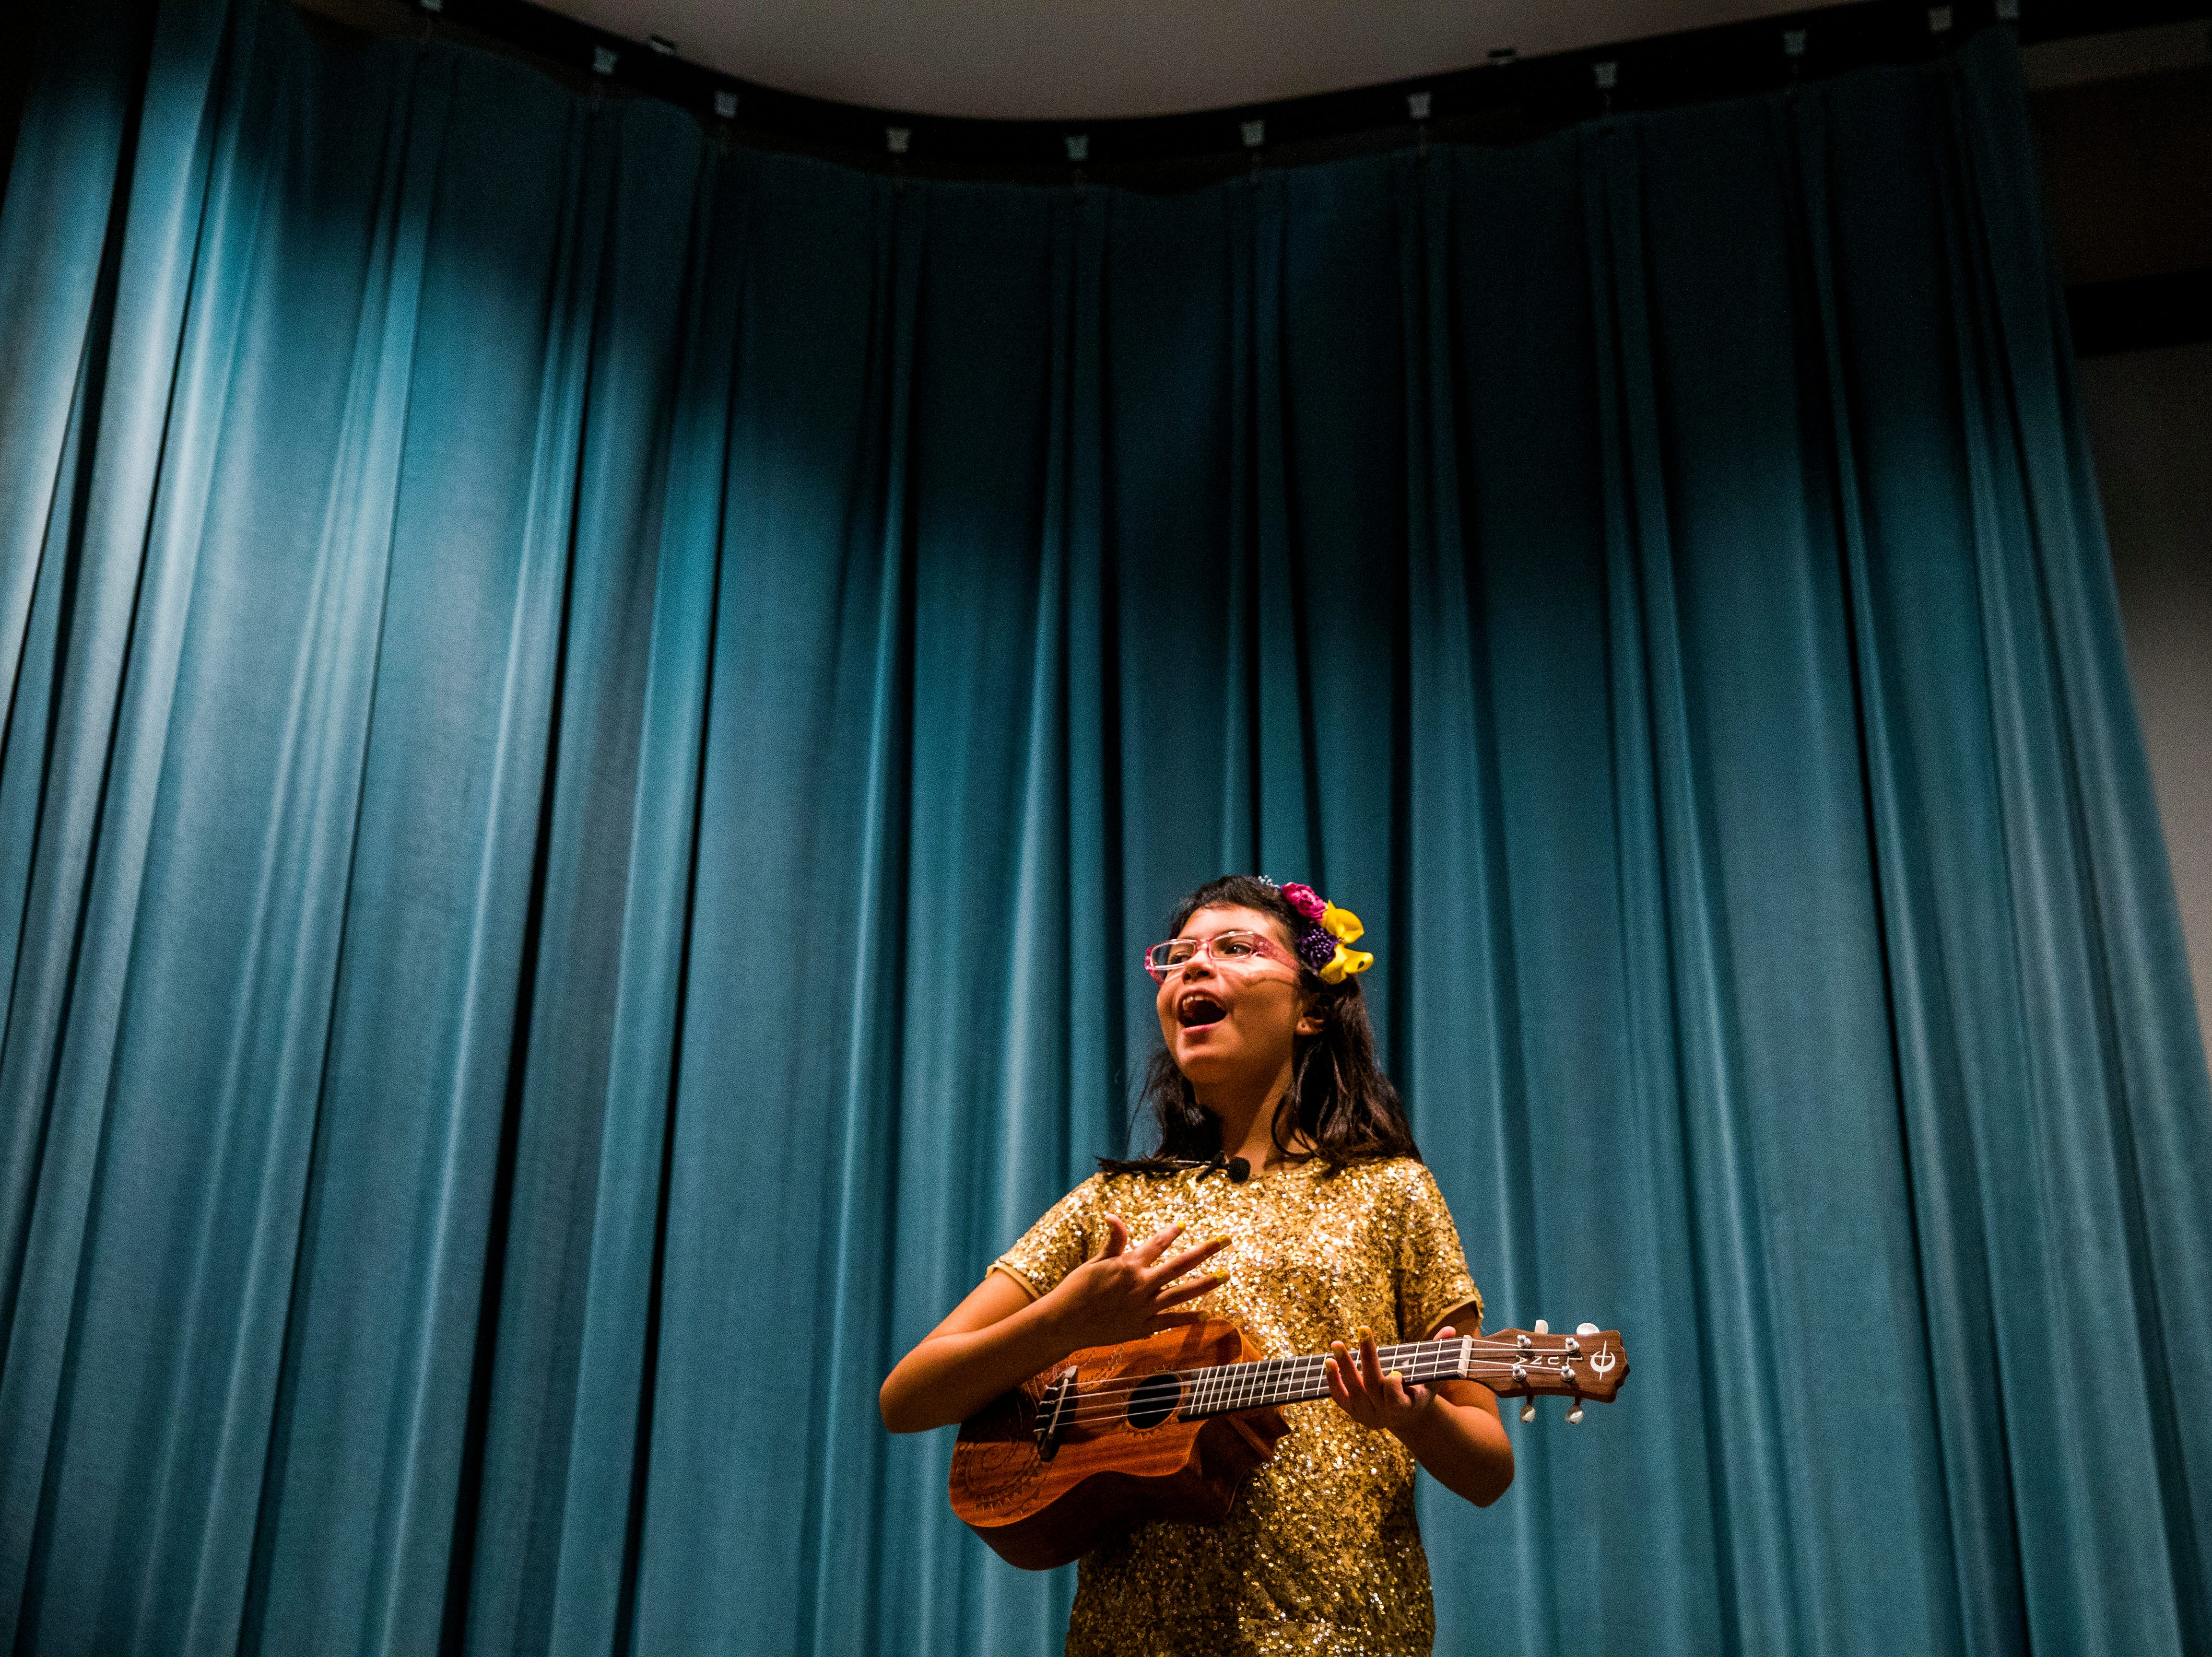 Camila Chang, 11, performs during a recital for friends and family at the Collier County Library in Naples on Saturday, Aug. 11, 2018. To conclude the camp, Marcela Guimoye put on a recital for the campers to be able to perform the songs they learned during their time with EndlessBrain.